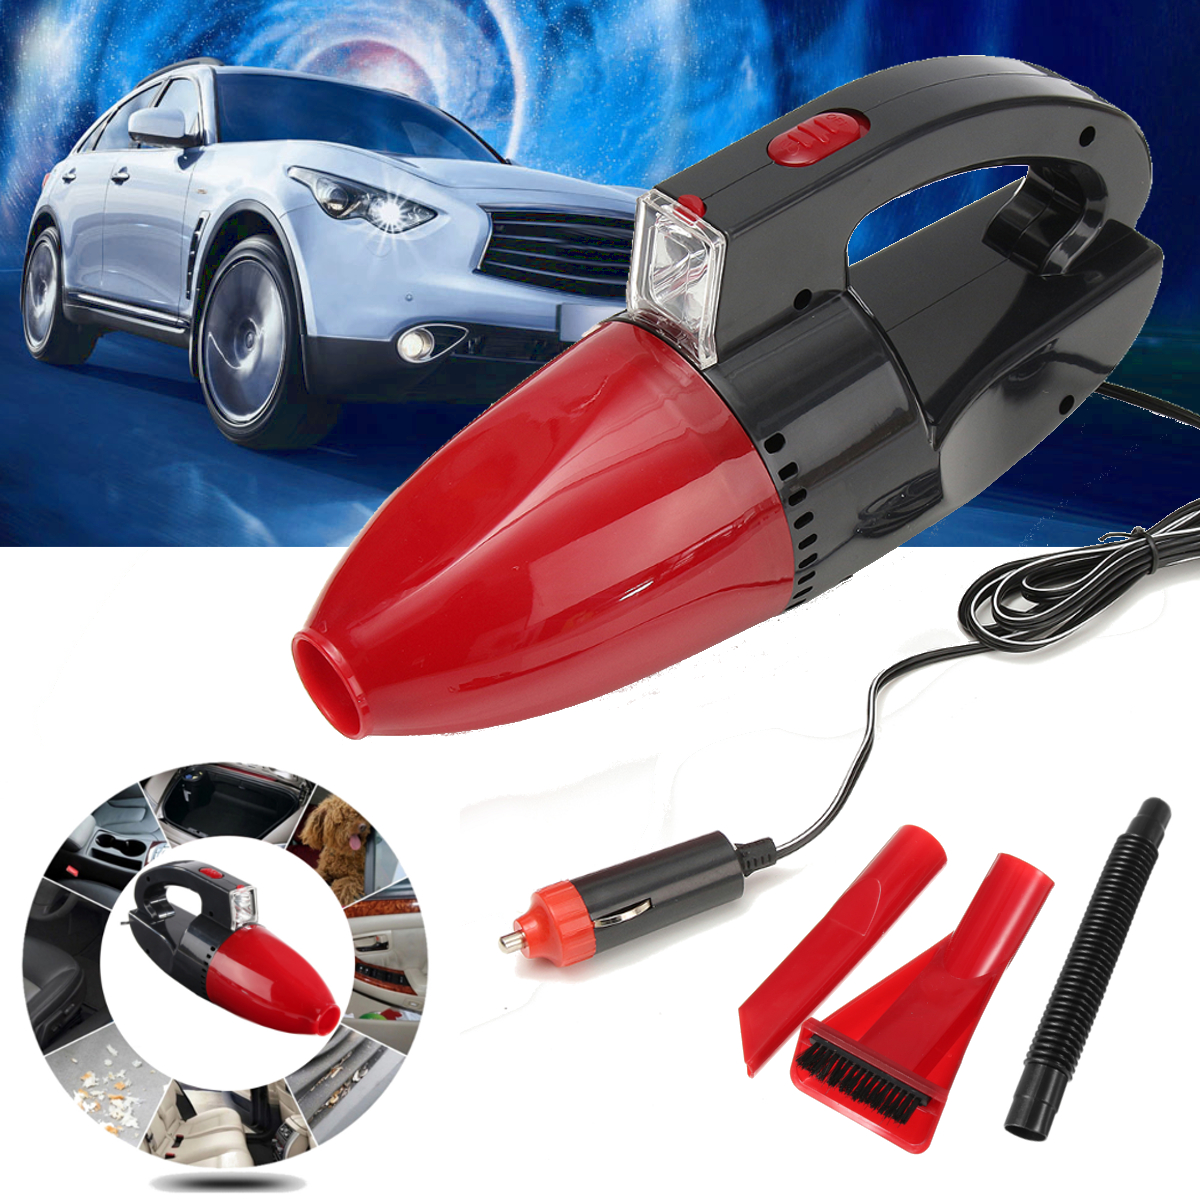 12V Portable Handheld Wet & Dry Car Vacuum Cleaner Vehicle Home Auto Dust Clean